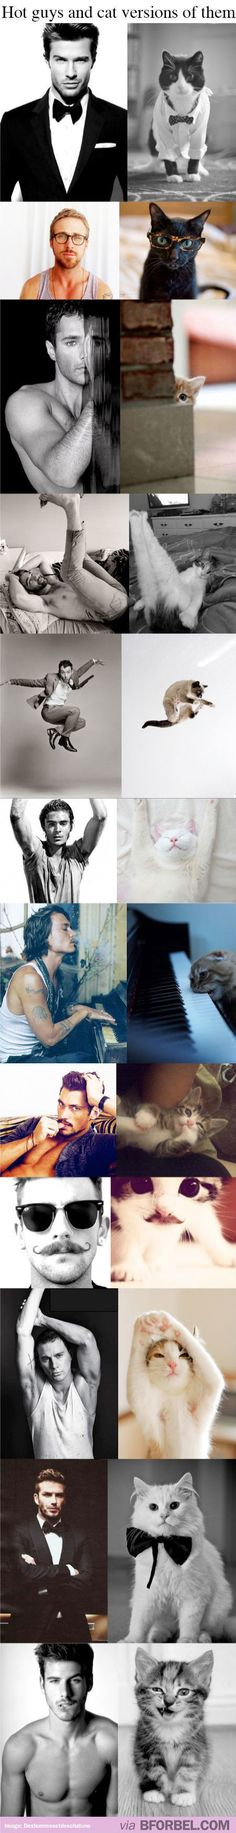 Hot guys and Cat versions of them